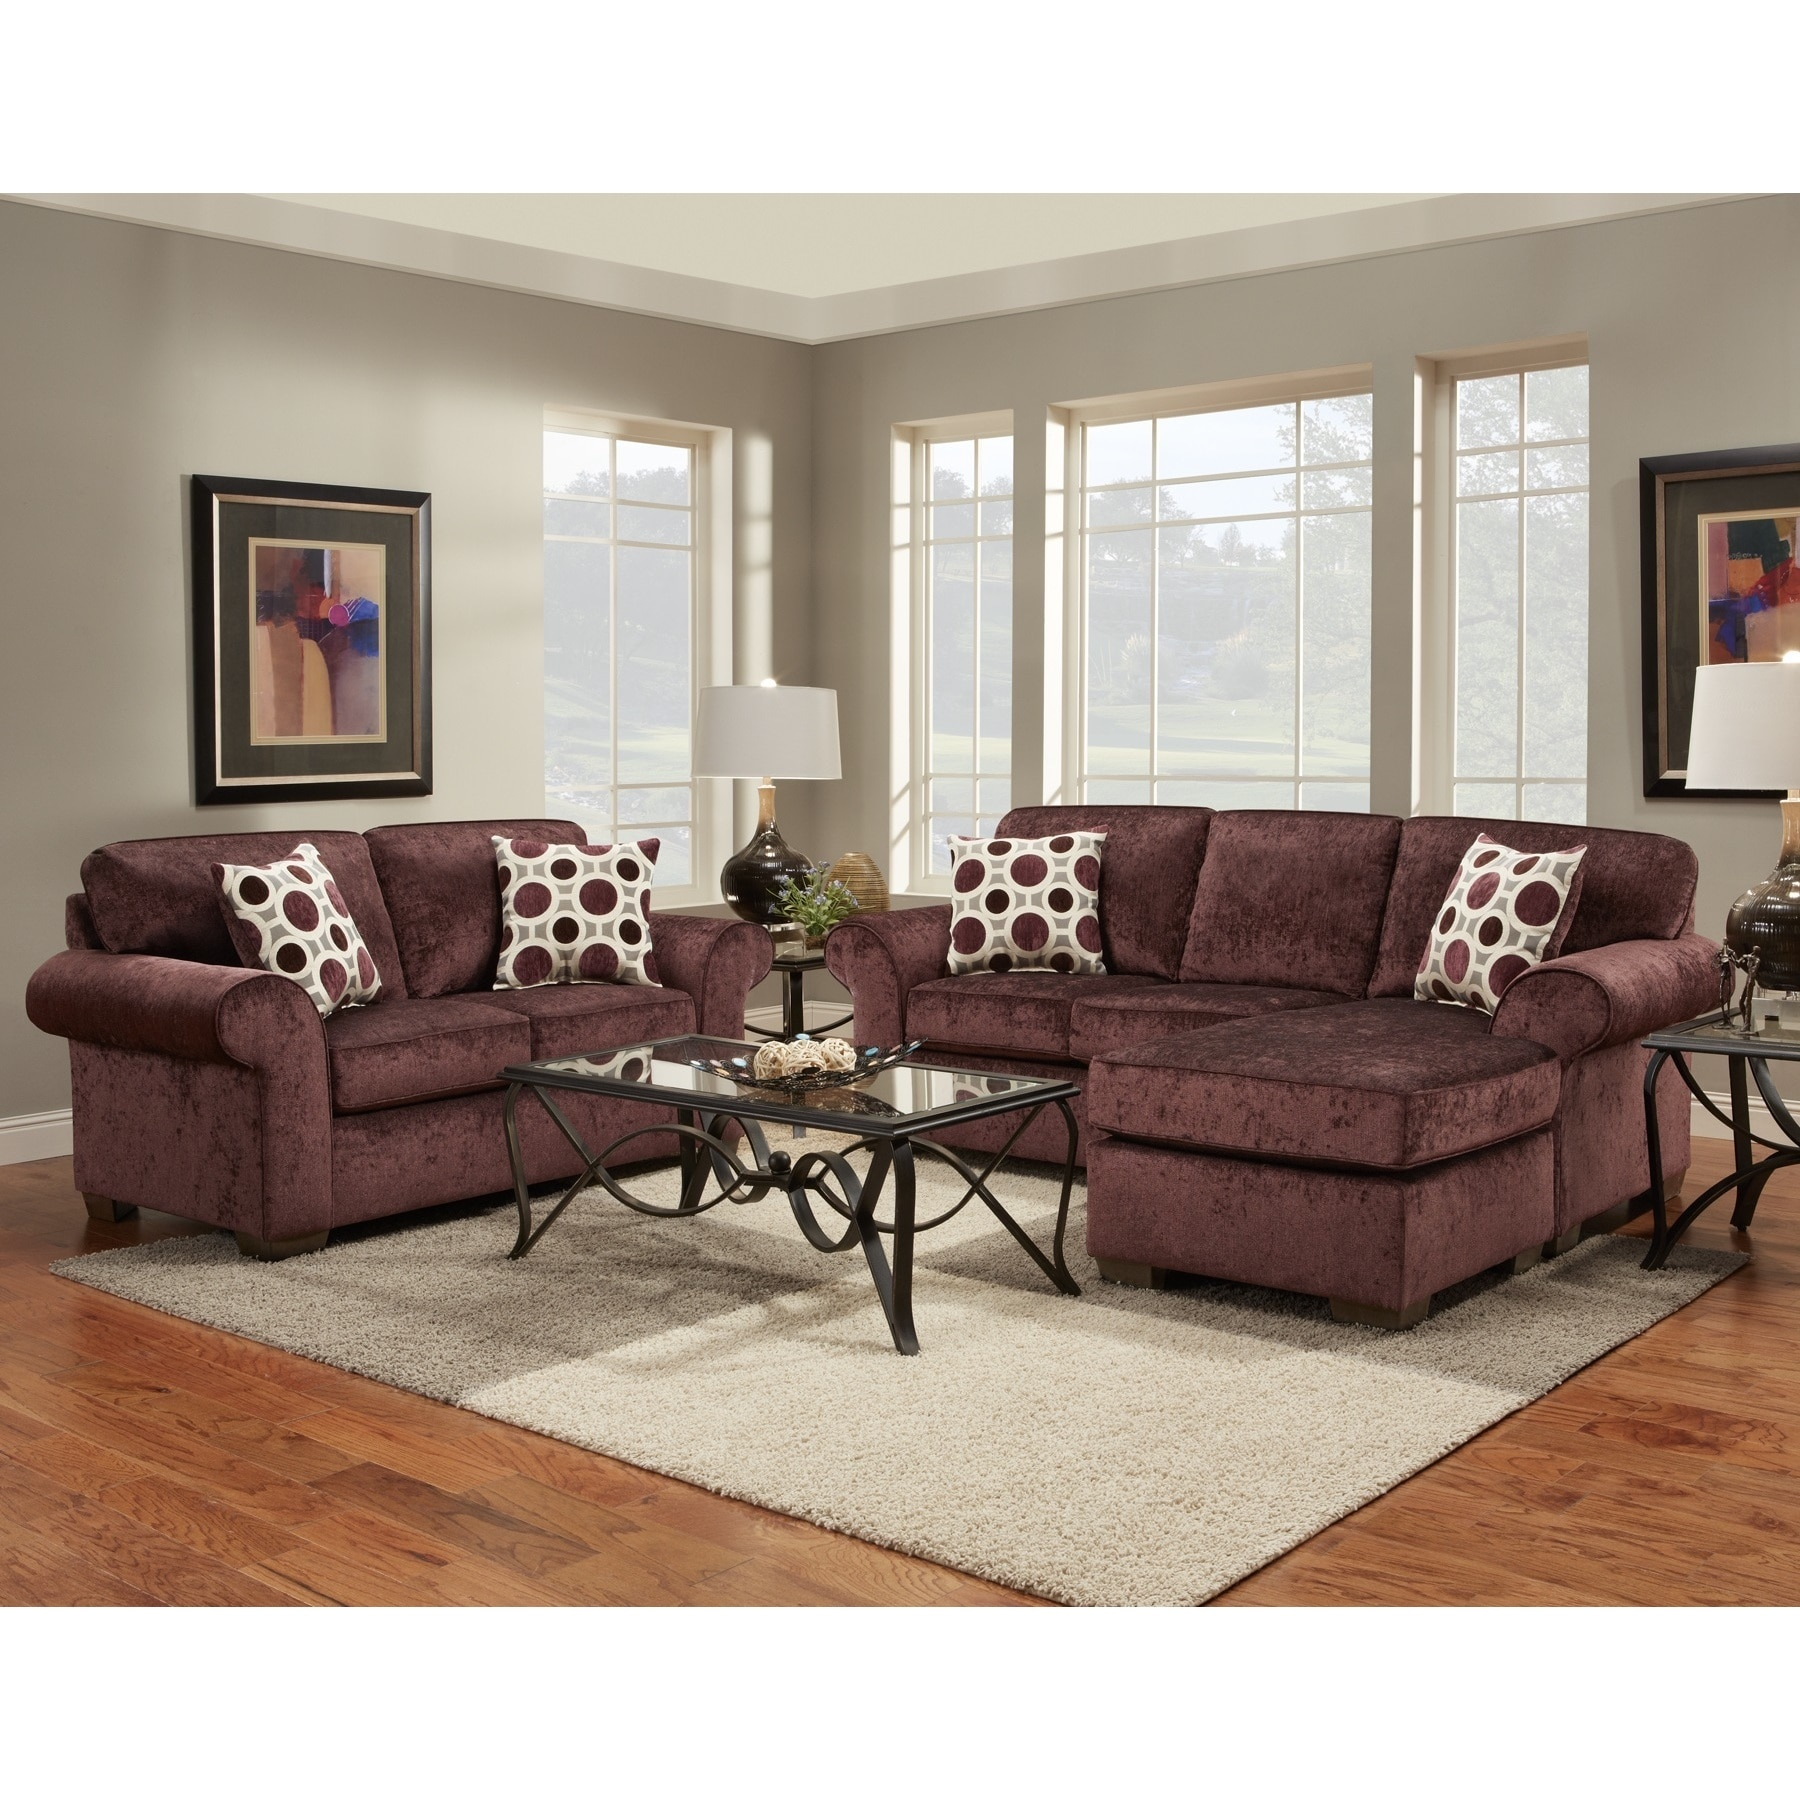 black sofa arabella values bedrooms detail and set coaster great loveseat living rooms